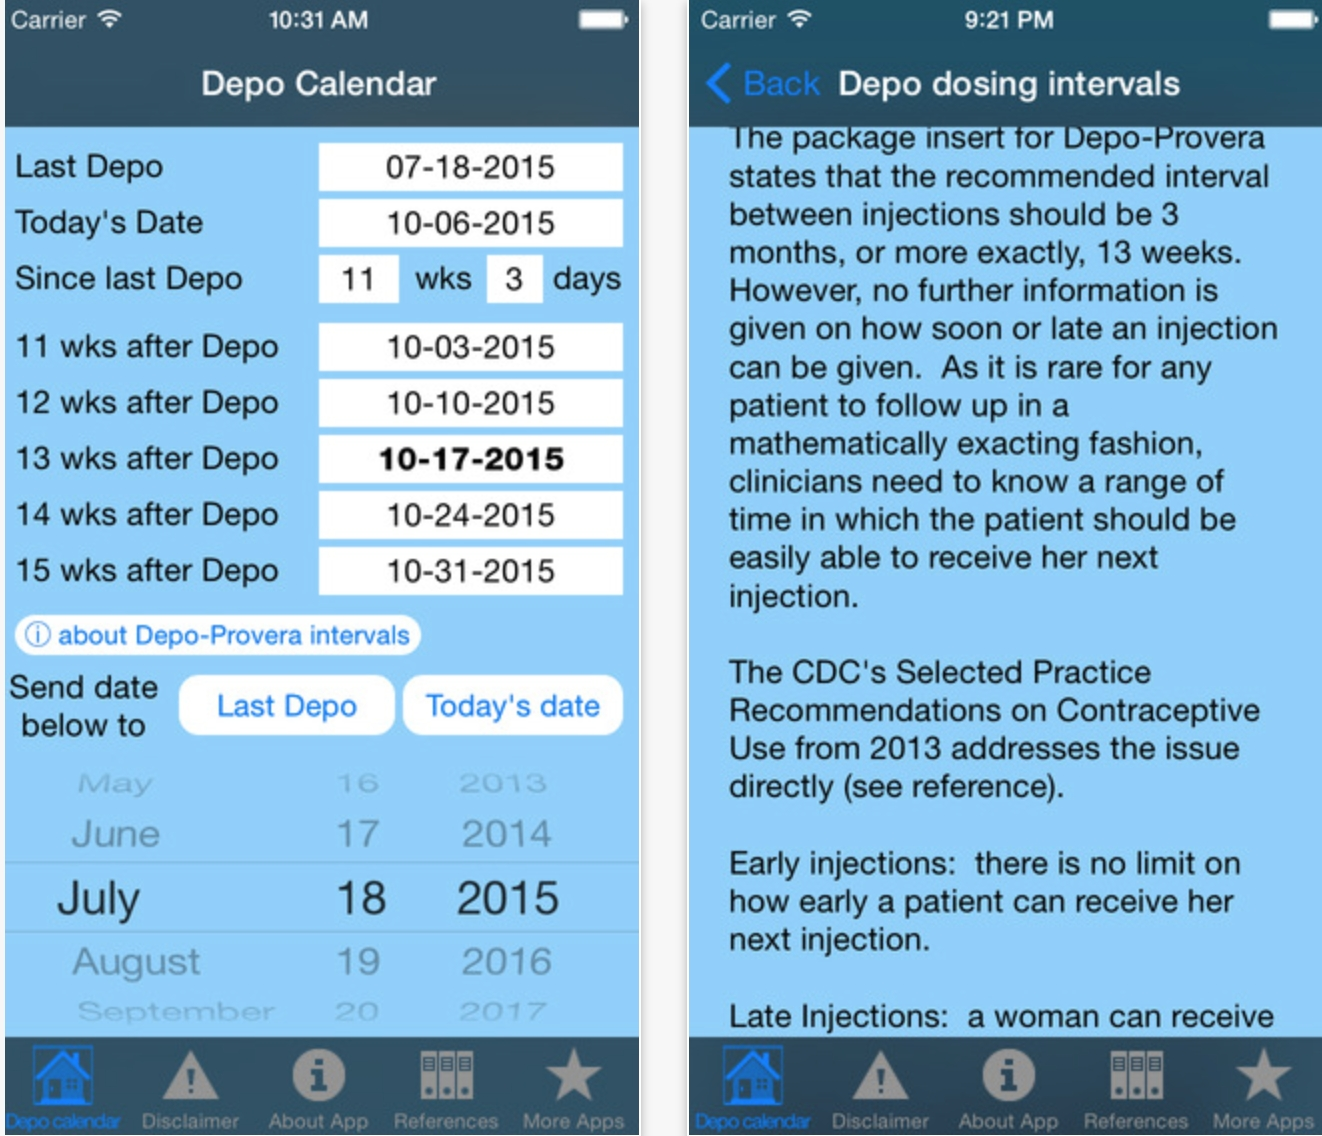 Depo Calendar App Could Significantly Improve Contraception  Depo Provera Schedule 15 Week 2020